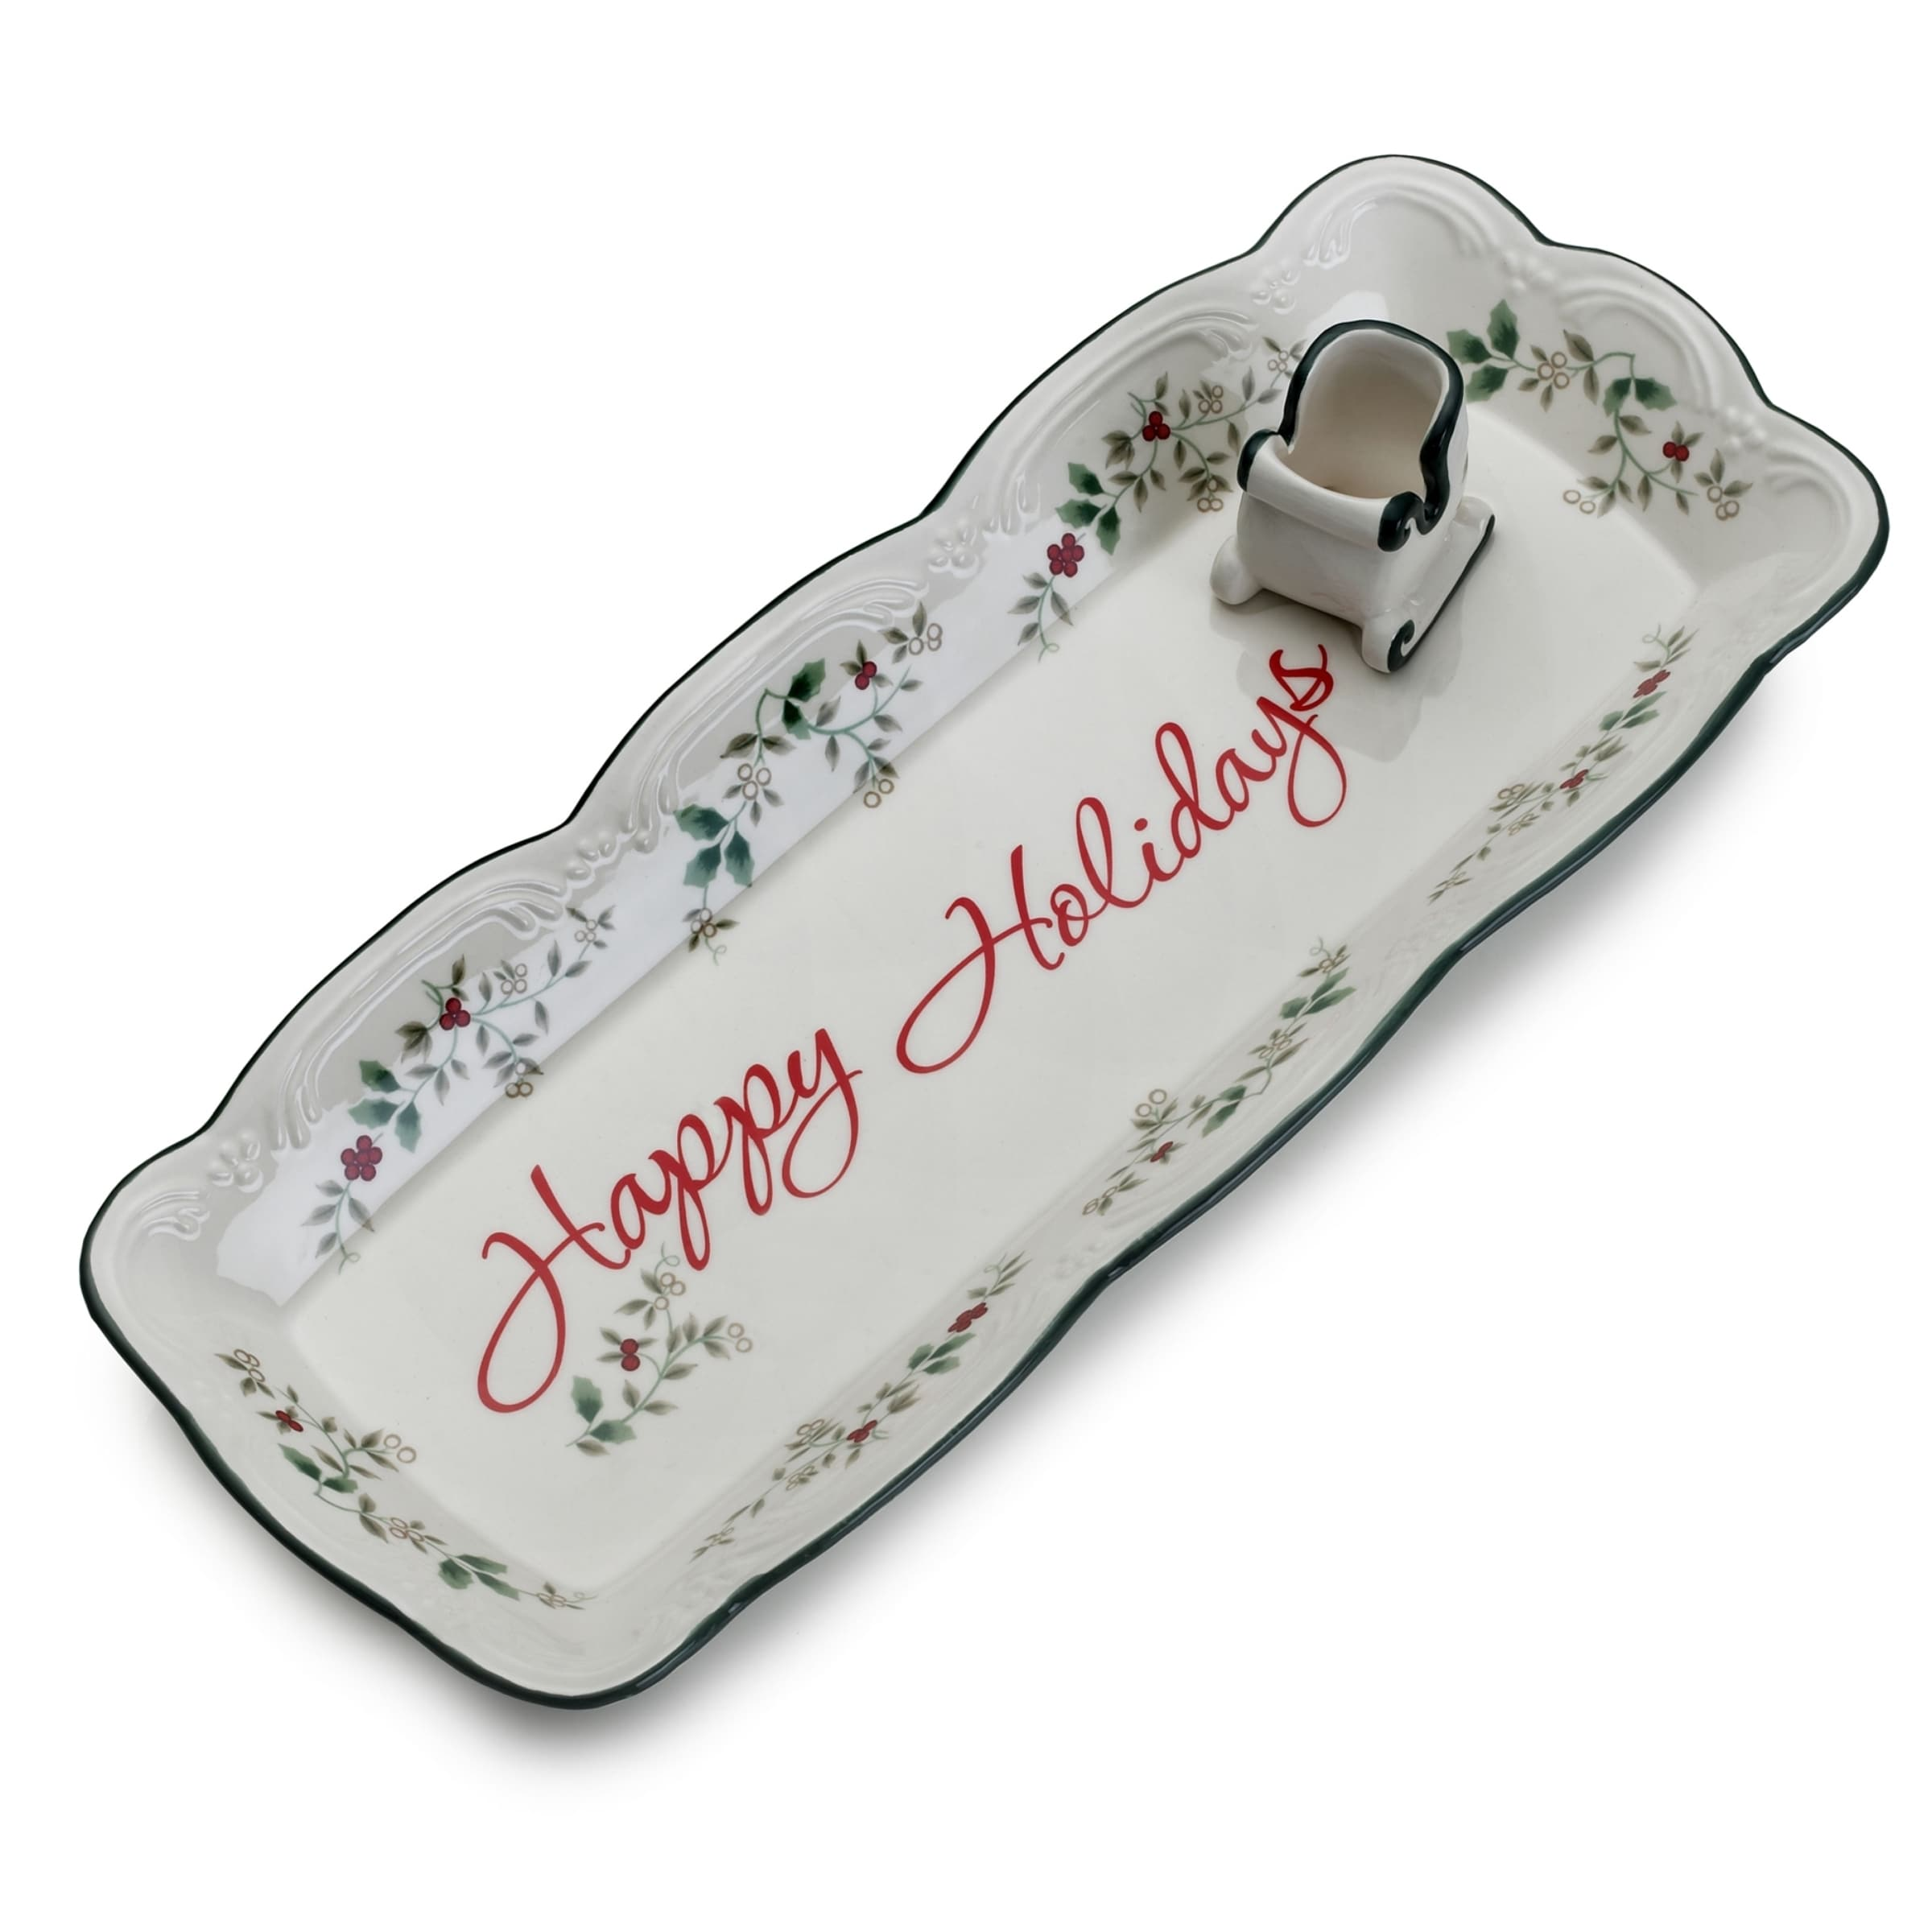 Pfaltzgraff Winterberry Appetizer Tray with Toothpick Hol...